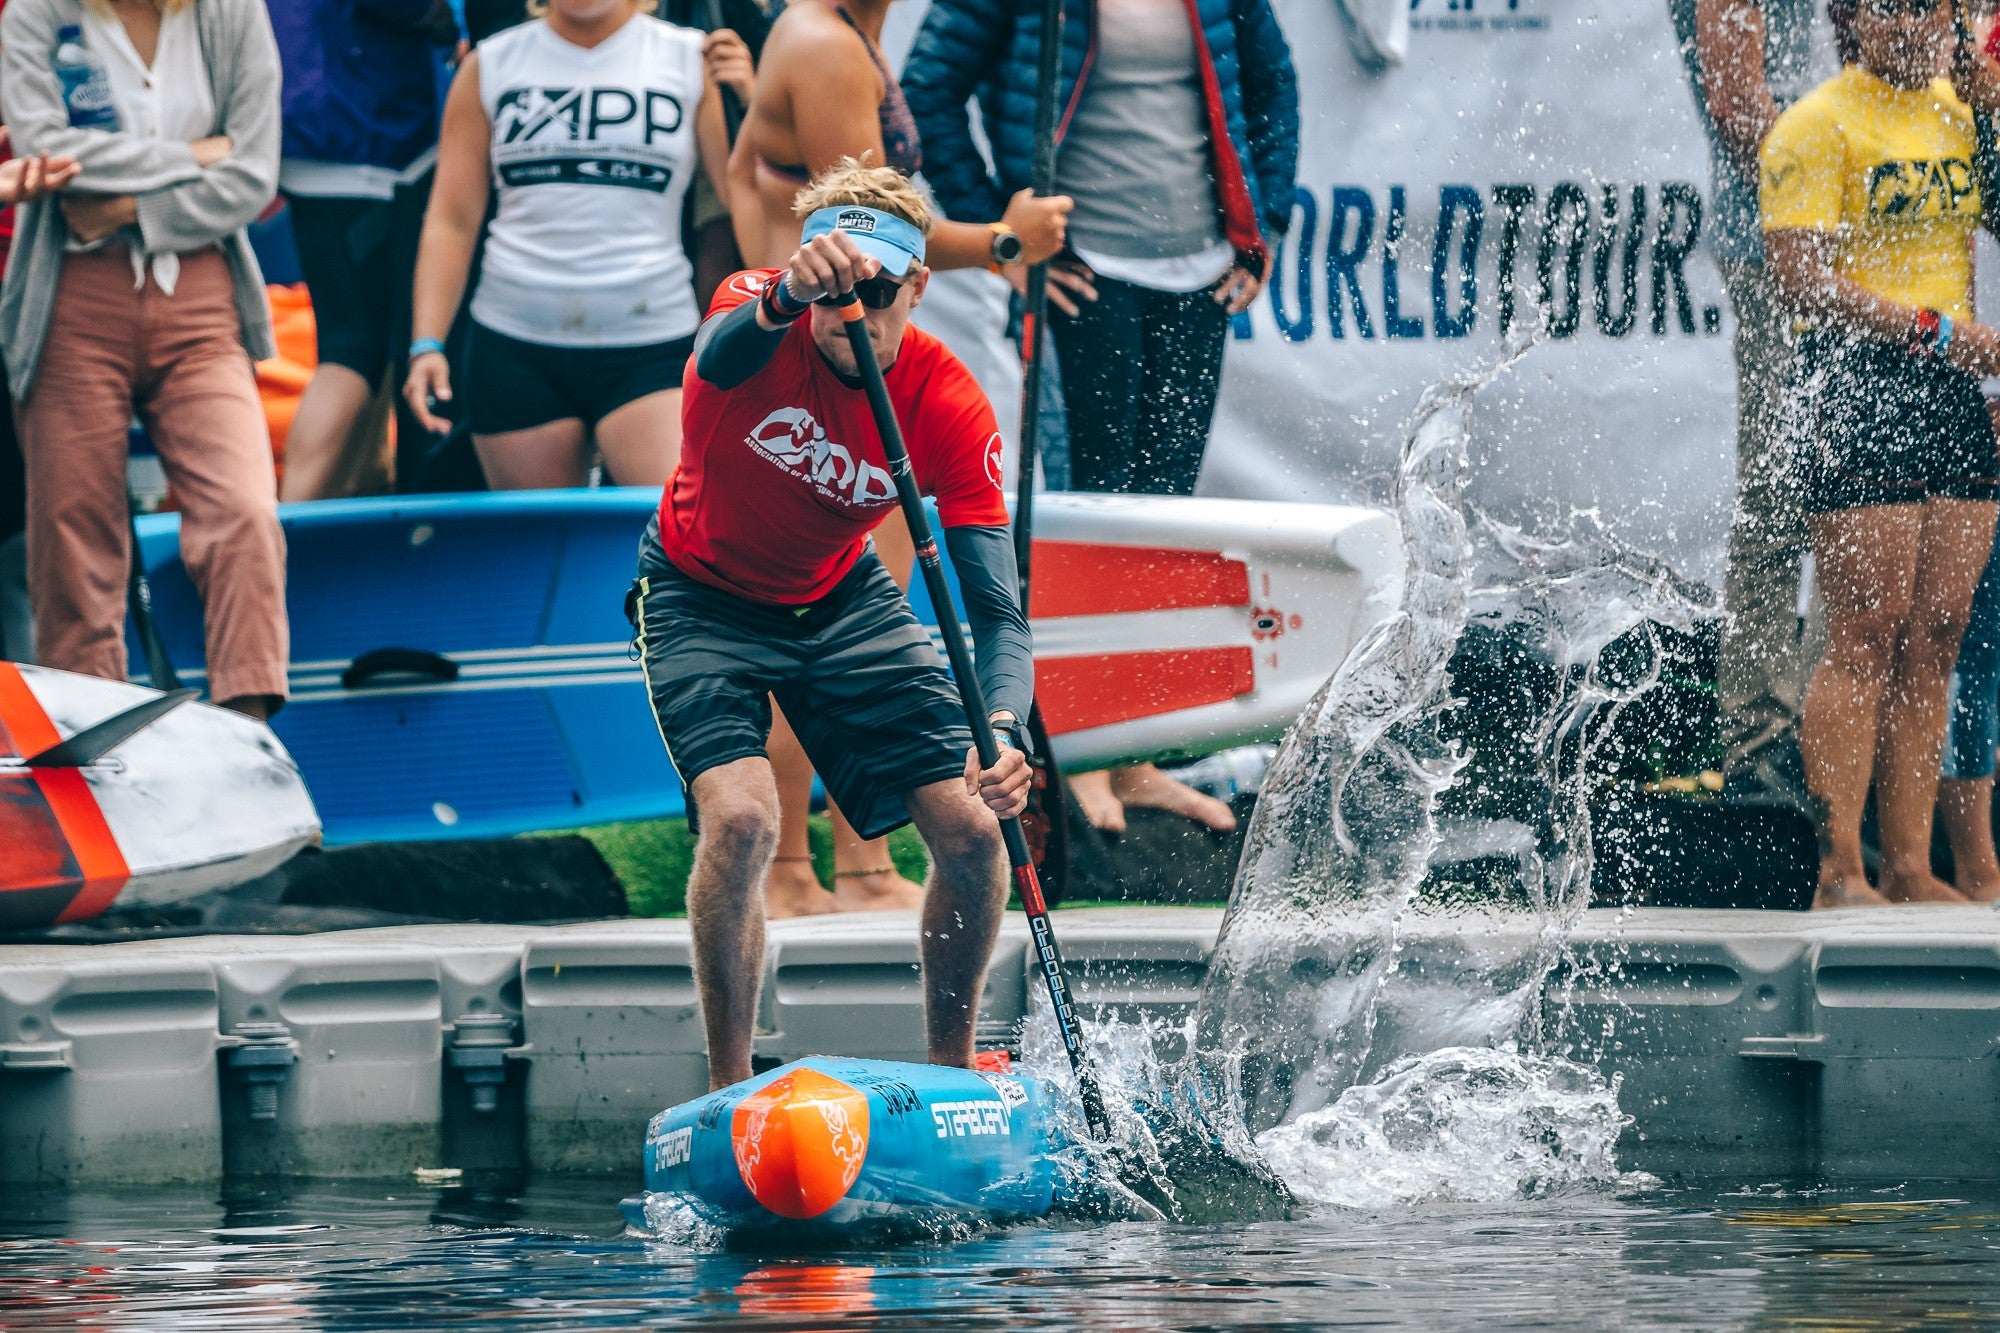 APP World Tour London 2019 - SUP Sprints Hackney